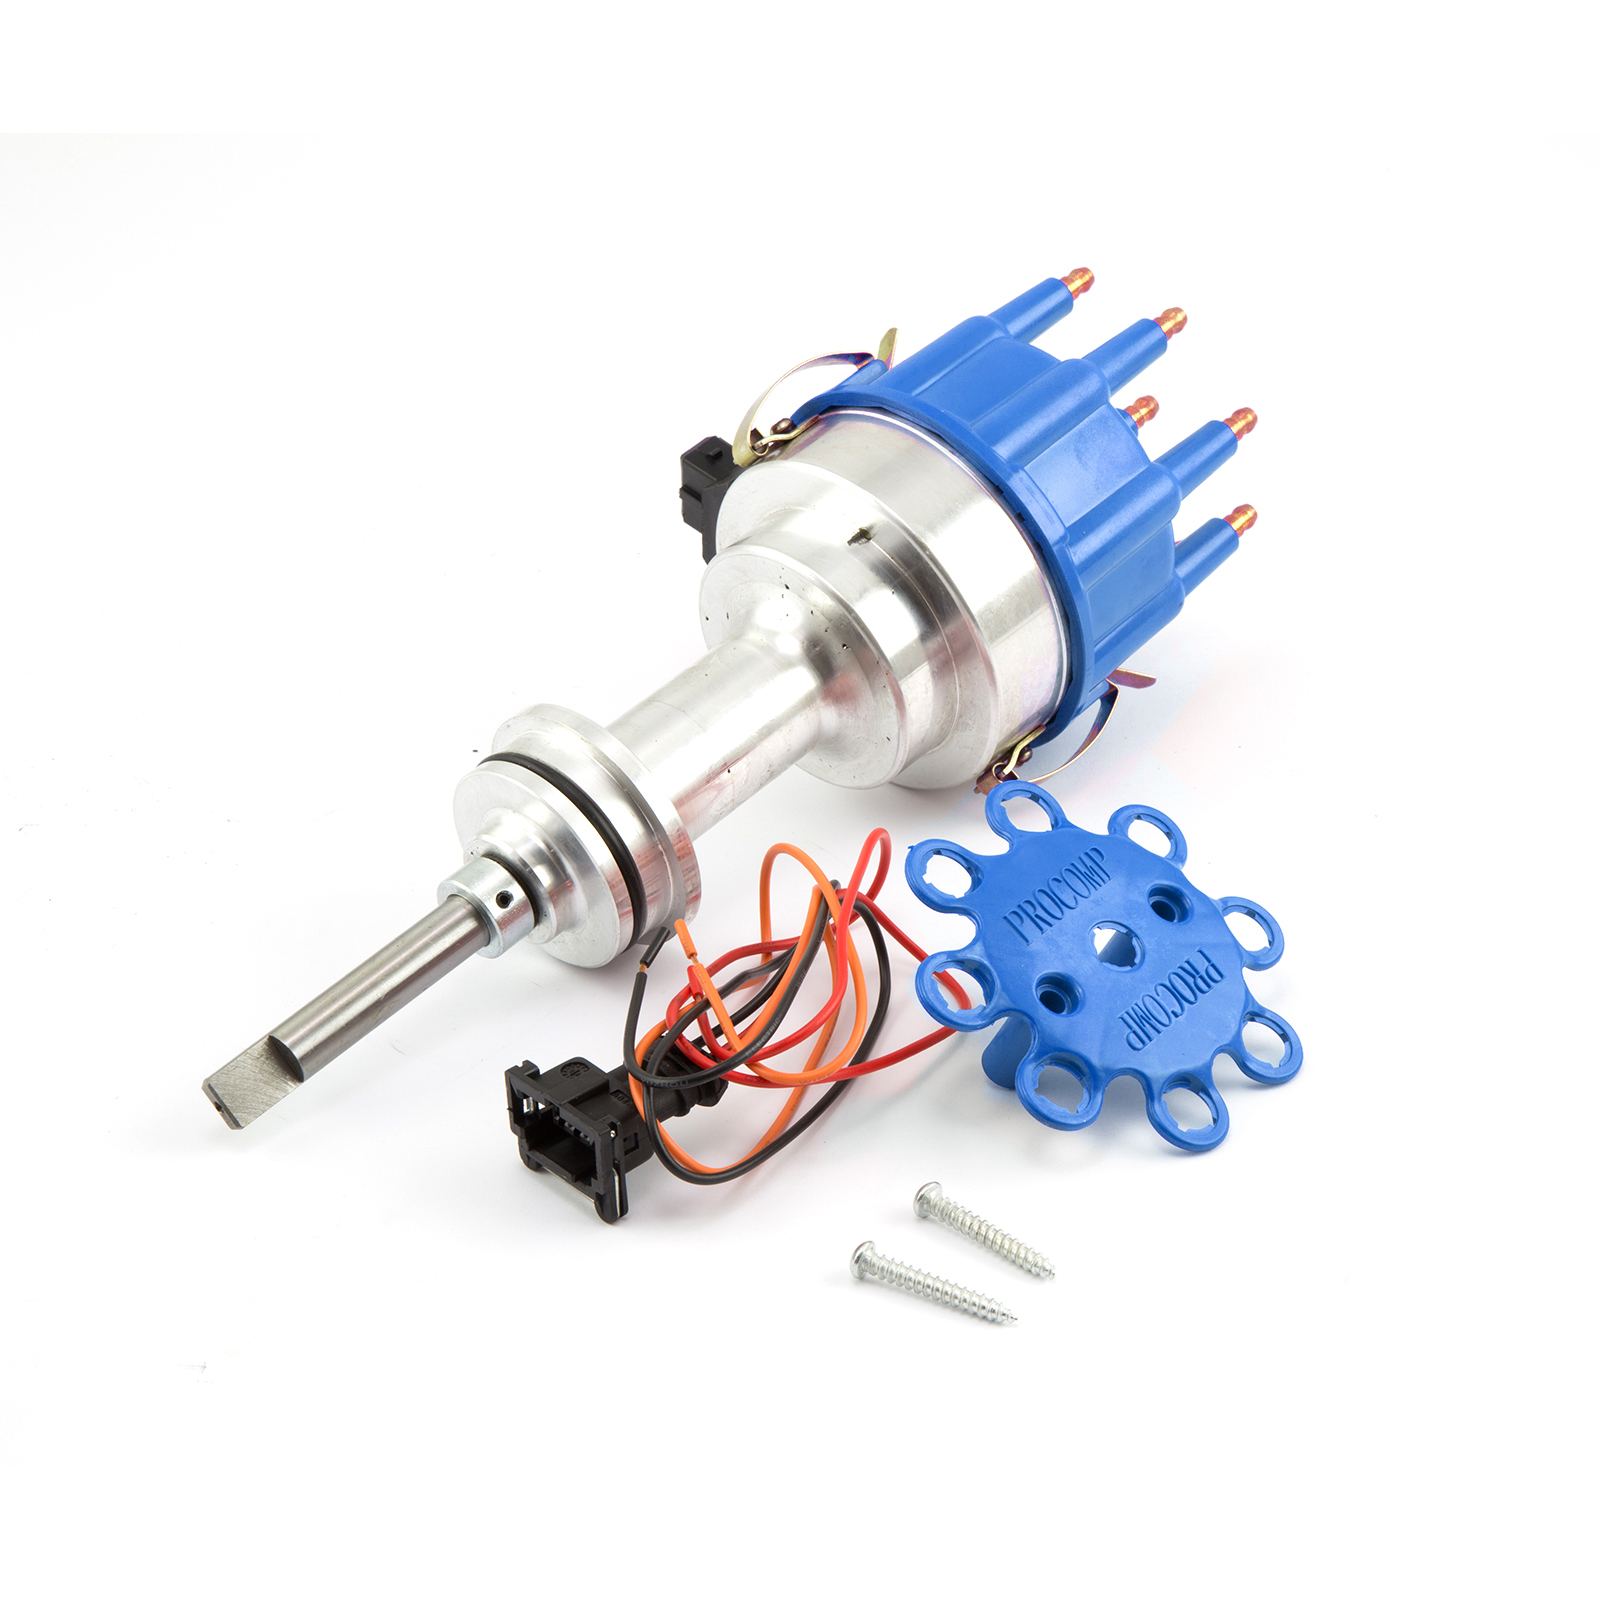 Mopar Chrysler BB 440 8020 Series Pro Billet Ready to Run Distributor [Blue]